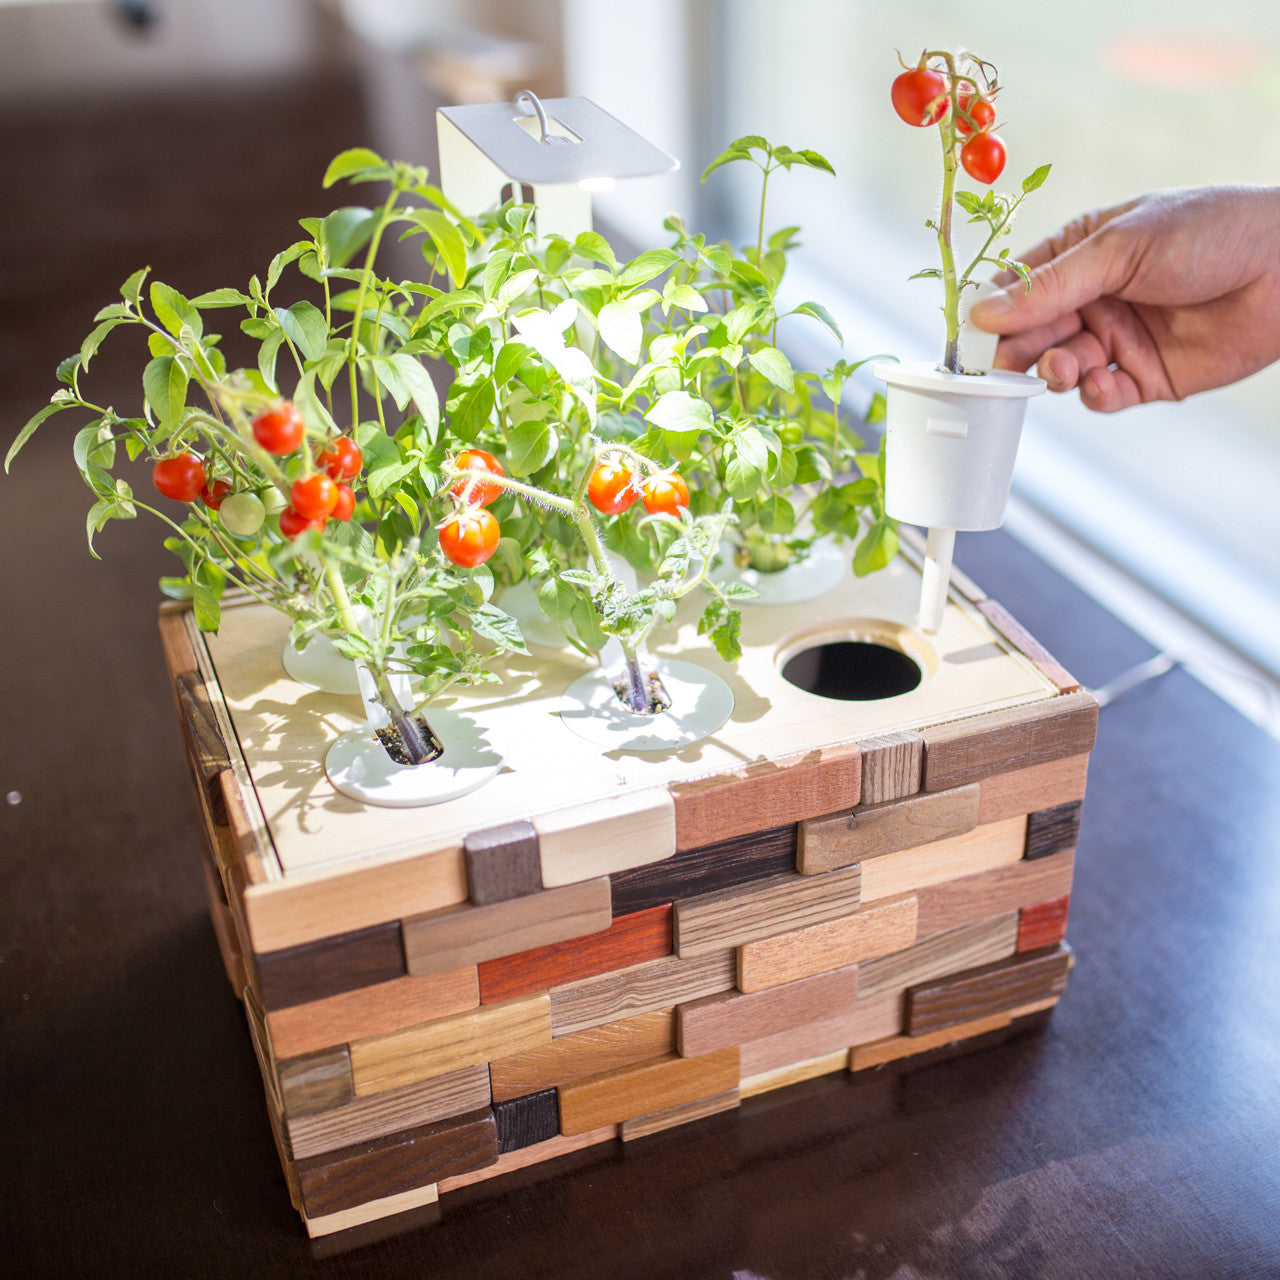 Diy indoor garden kit click grow for Indoor gardening kit